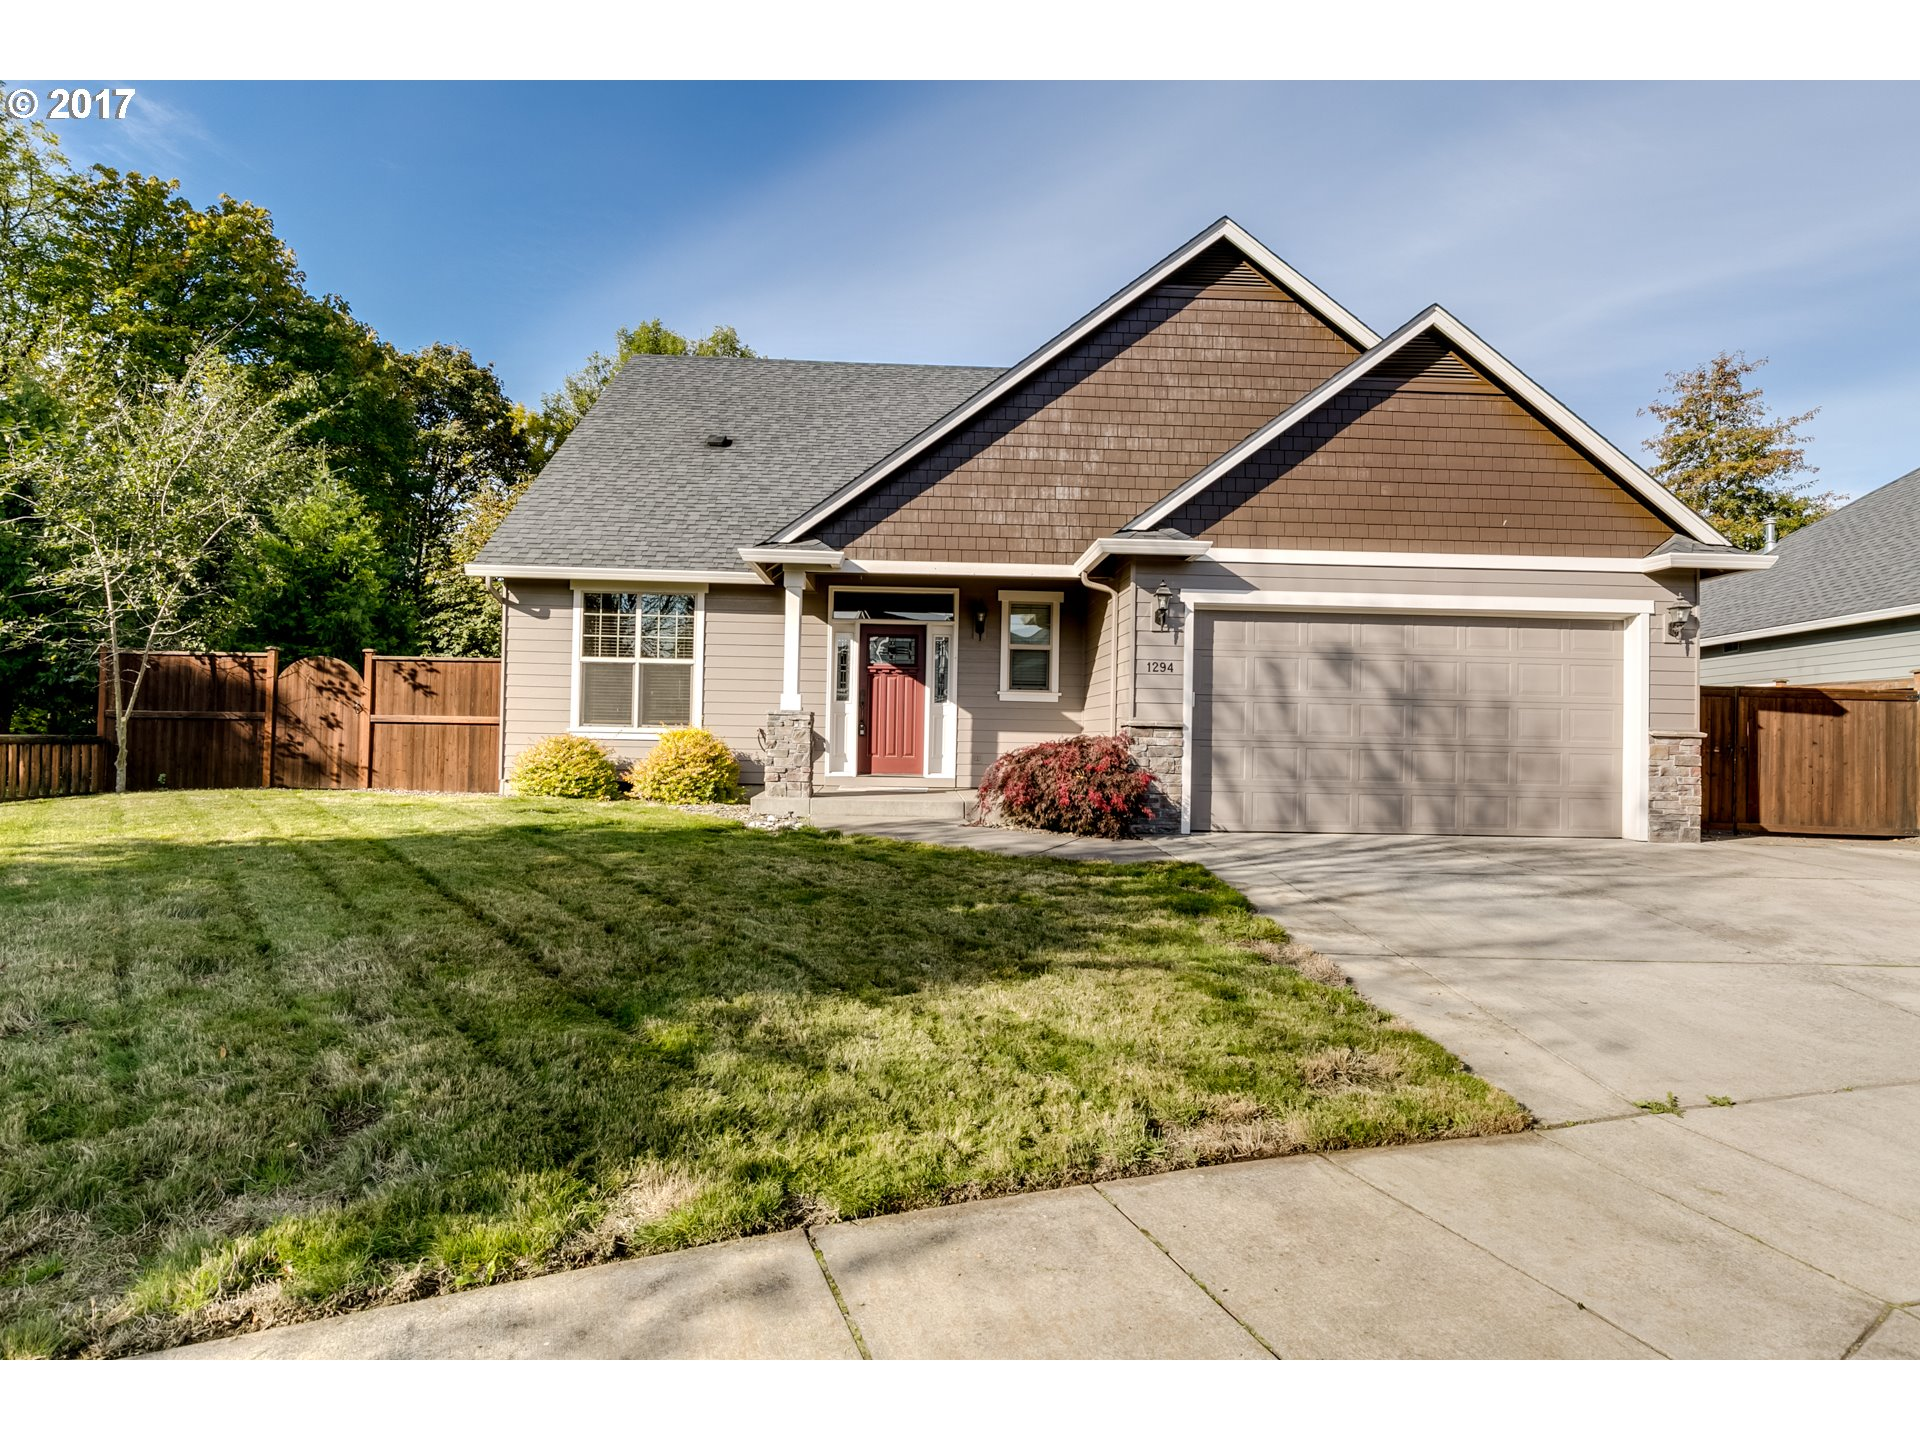 1294 S 40TH PL, Springfield OR 97478